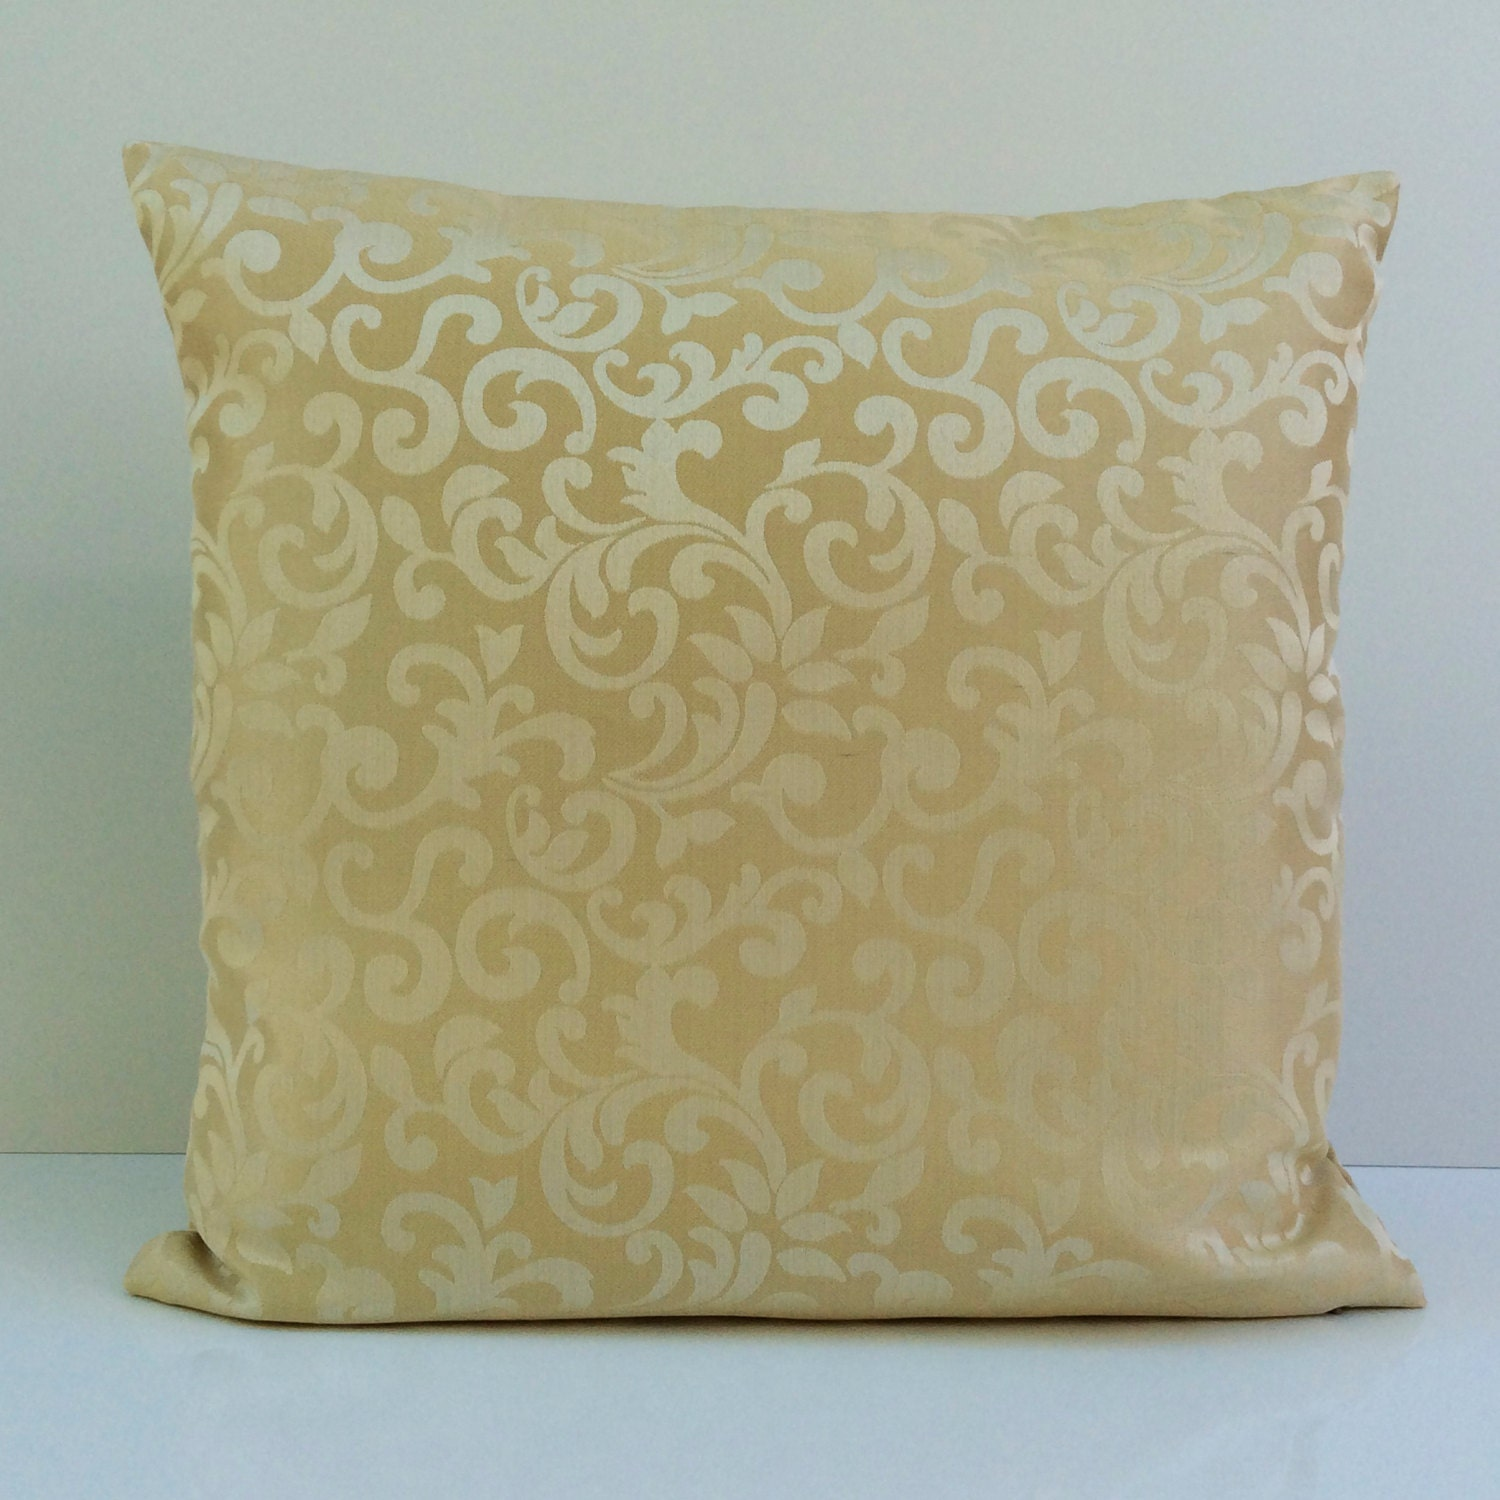 Decorative Cream Pillows : Beige Cream Pillow Throw Pillow Cover Decorative Pillow